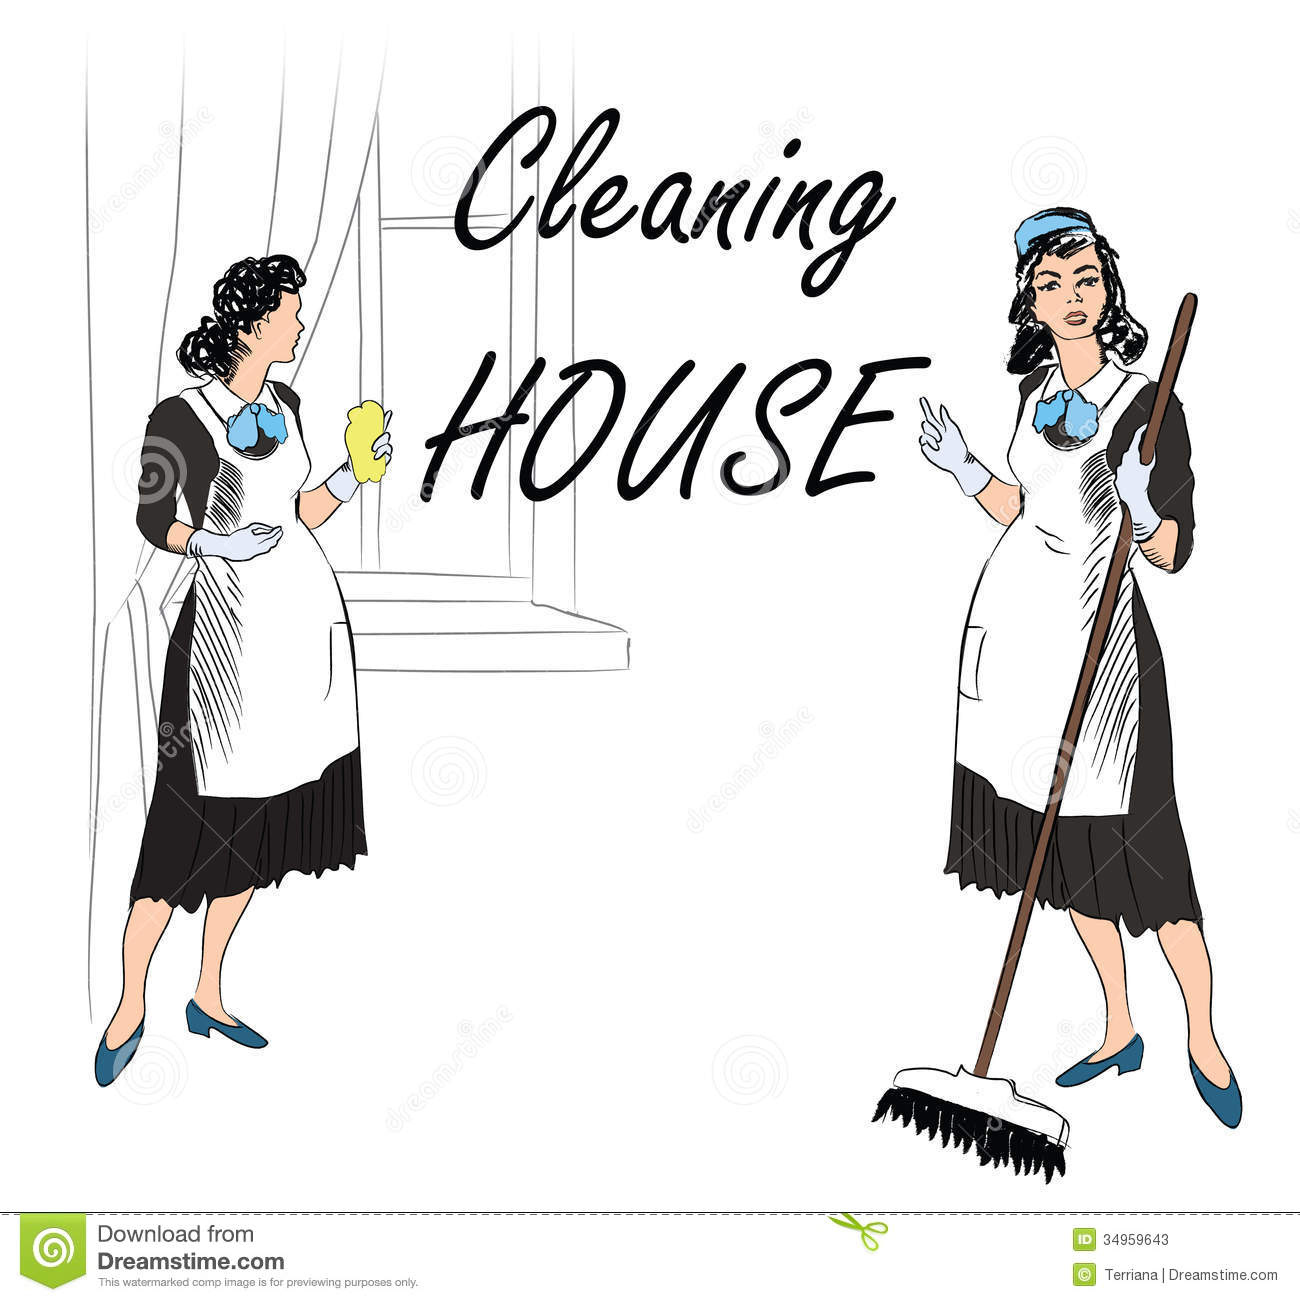 resume maid service house cleaning advertisement dhavvied cf